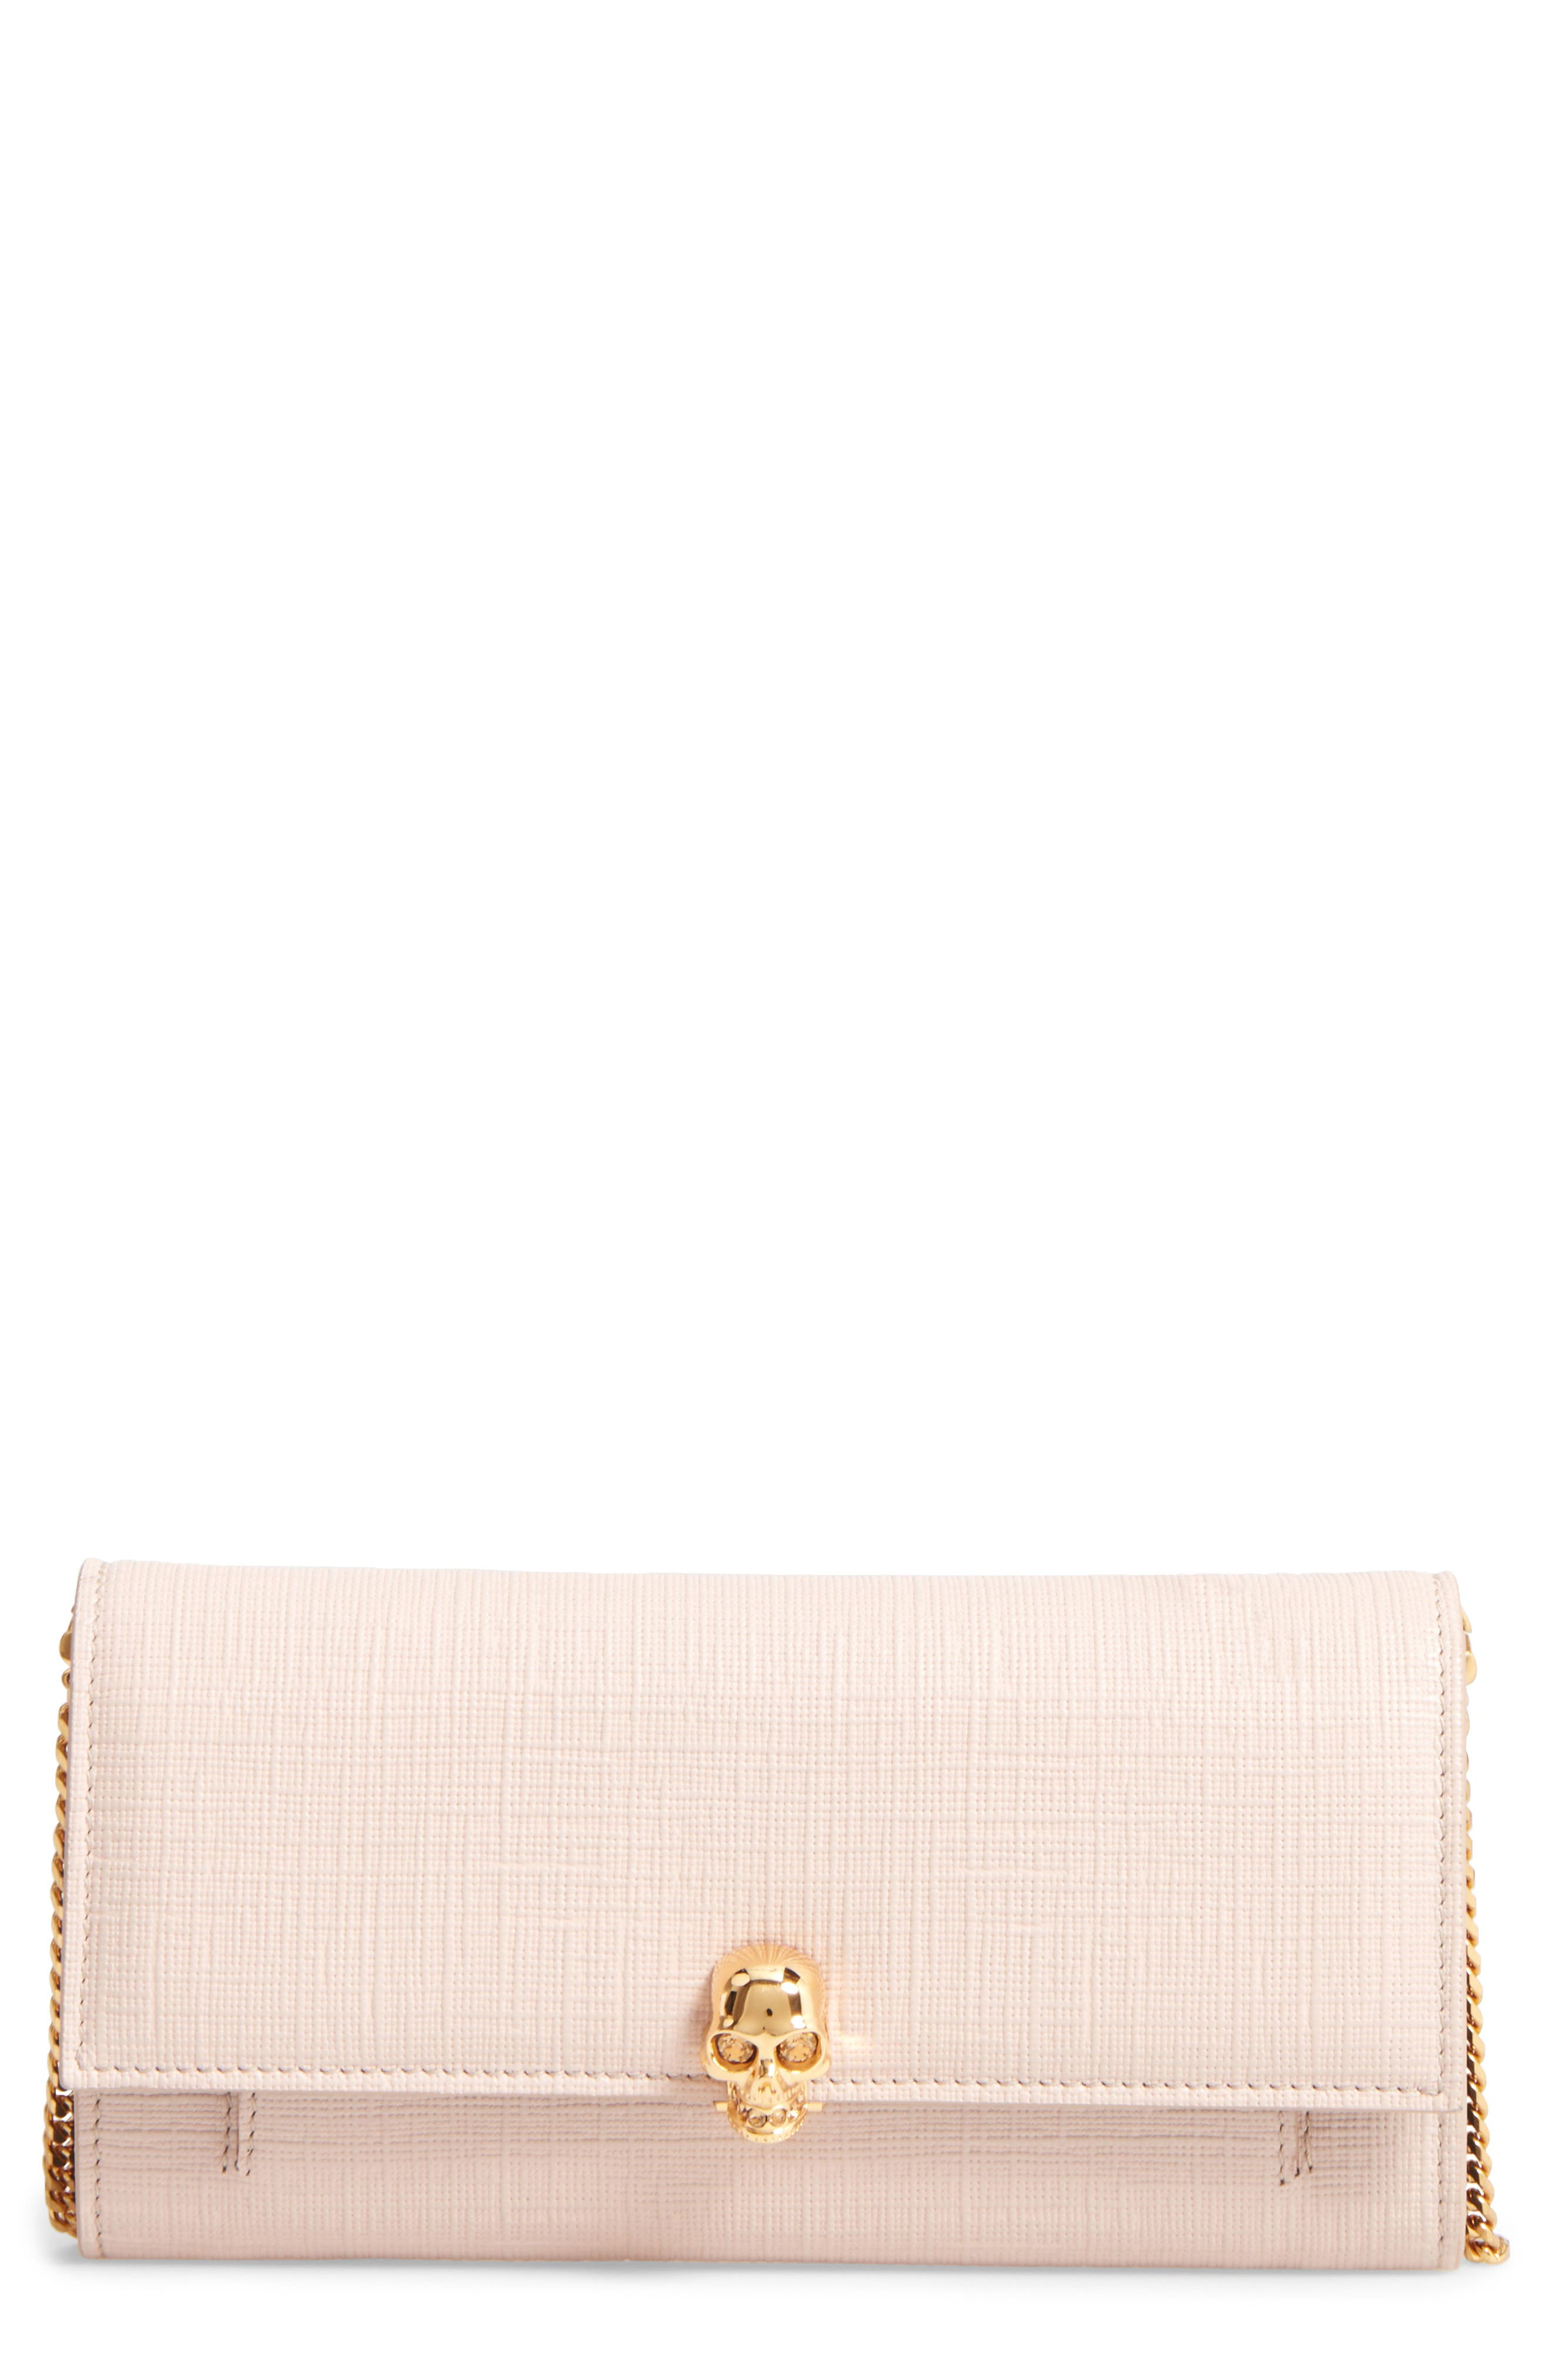 Main Image - Alexander McQueen Embossed Leather Wallet on a Chain